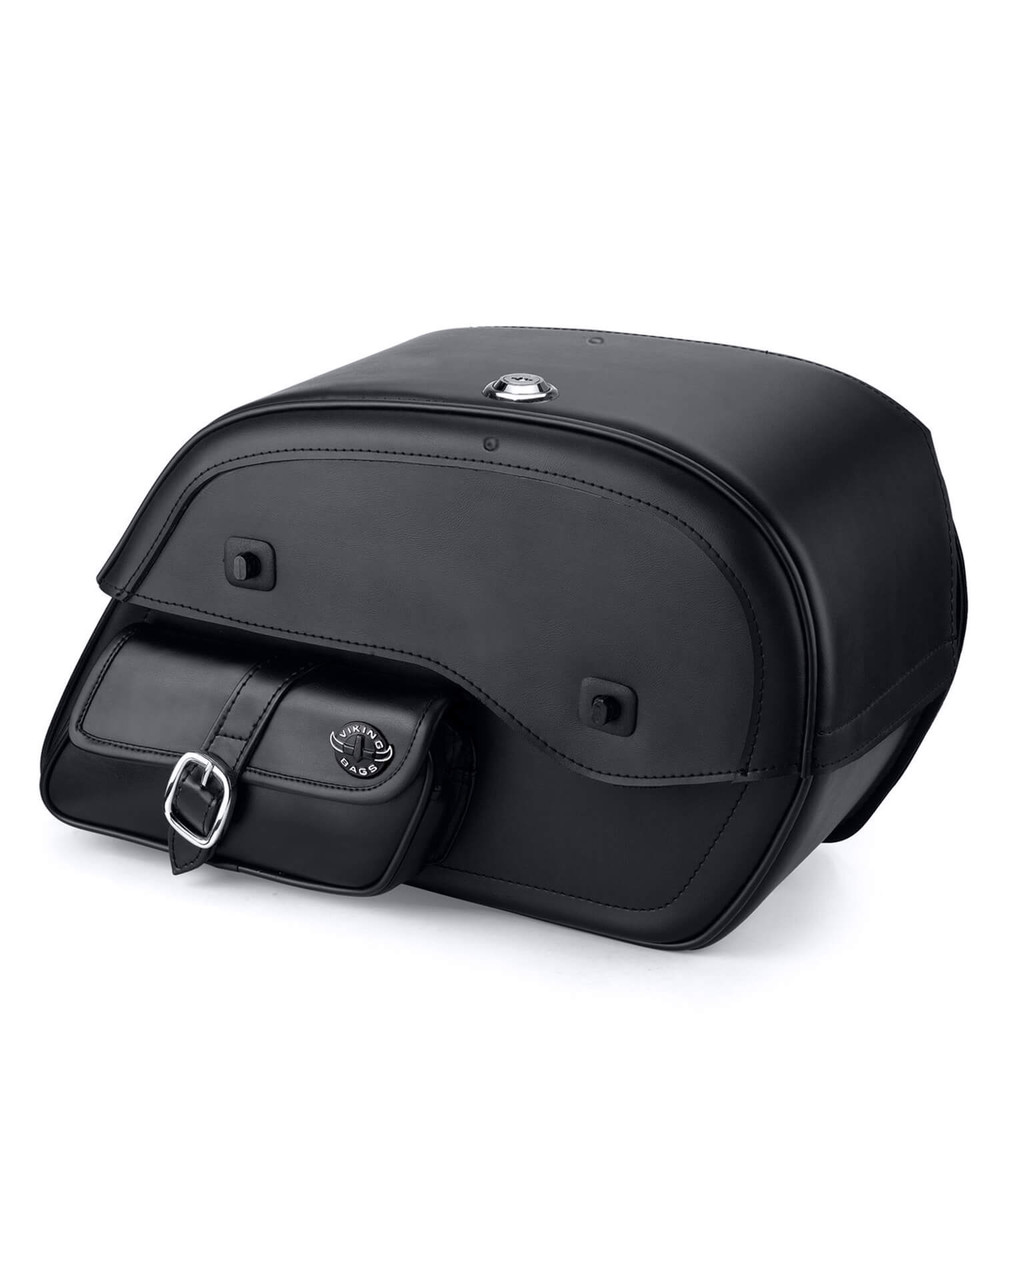 Viking Charger Side Pocket Large With Shock Cutout Motorcycle Saddlebags For Harley Dyna Low Rider FXDL Main Bag View